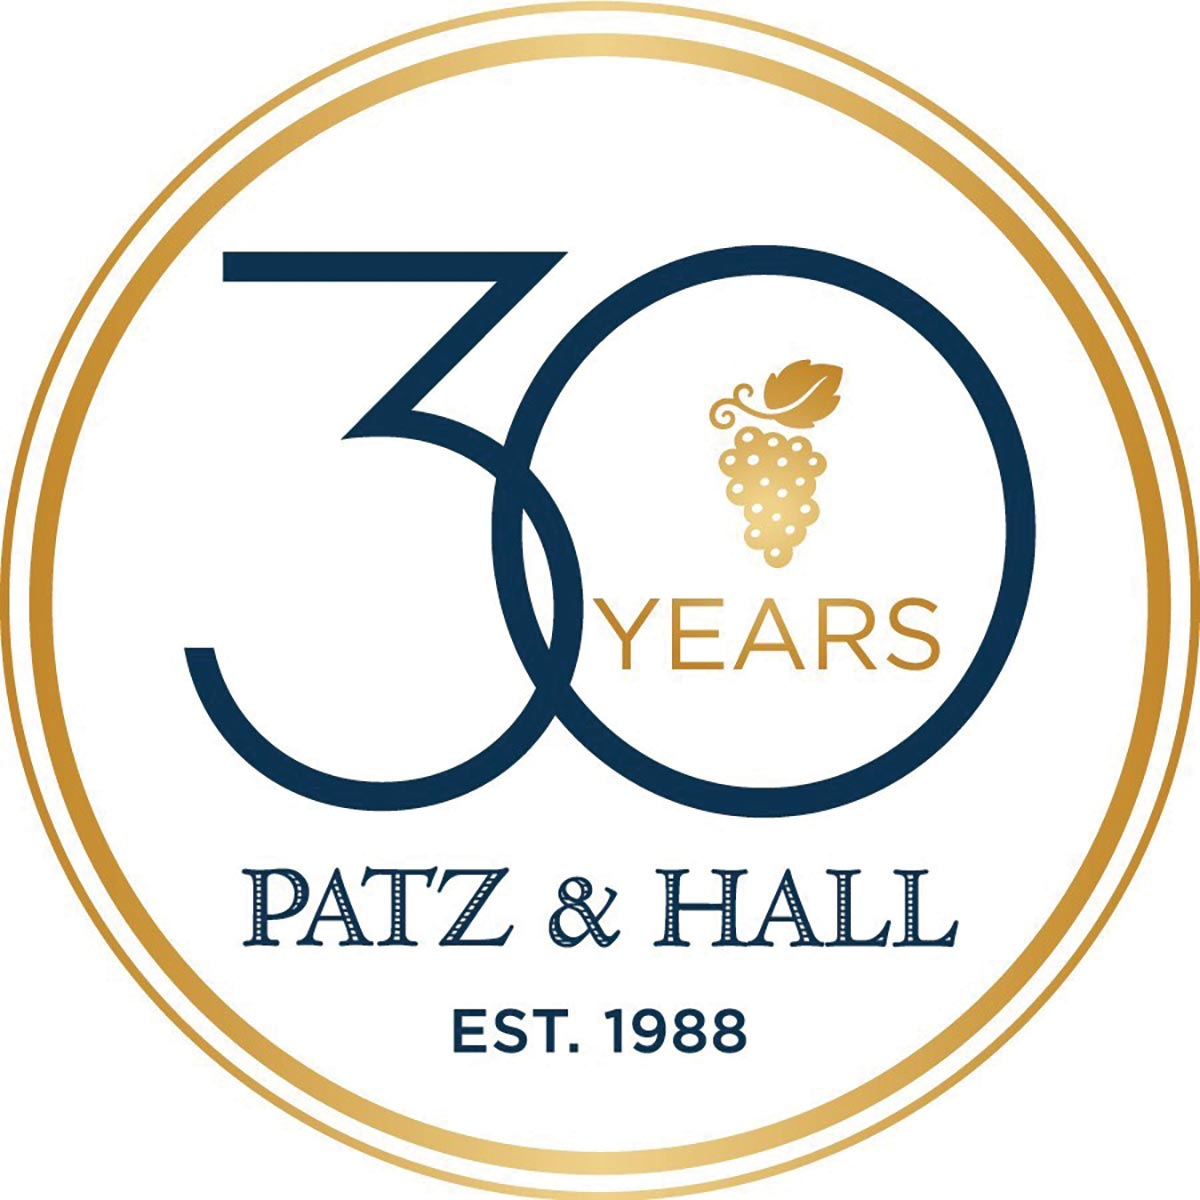 California's Patz & Hall Celebrates 30 Years